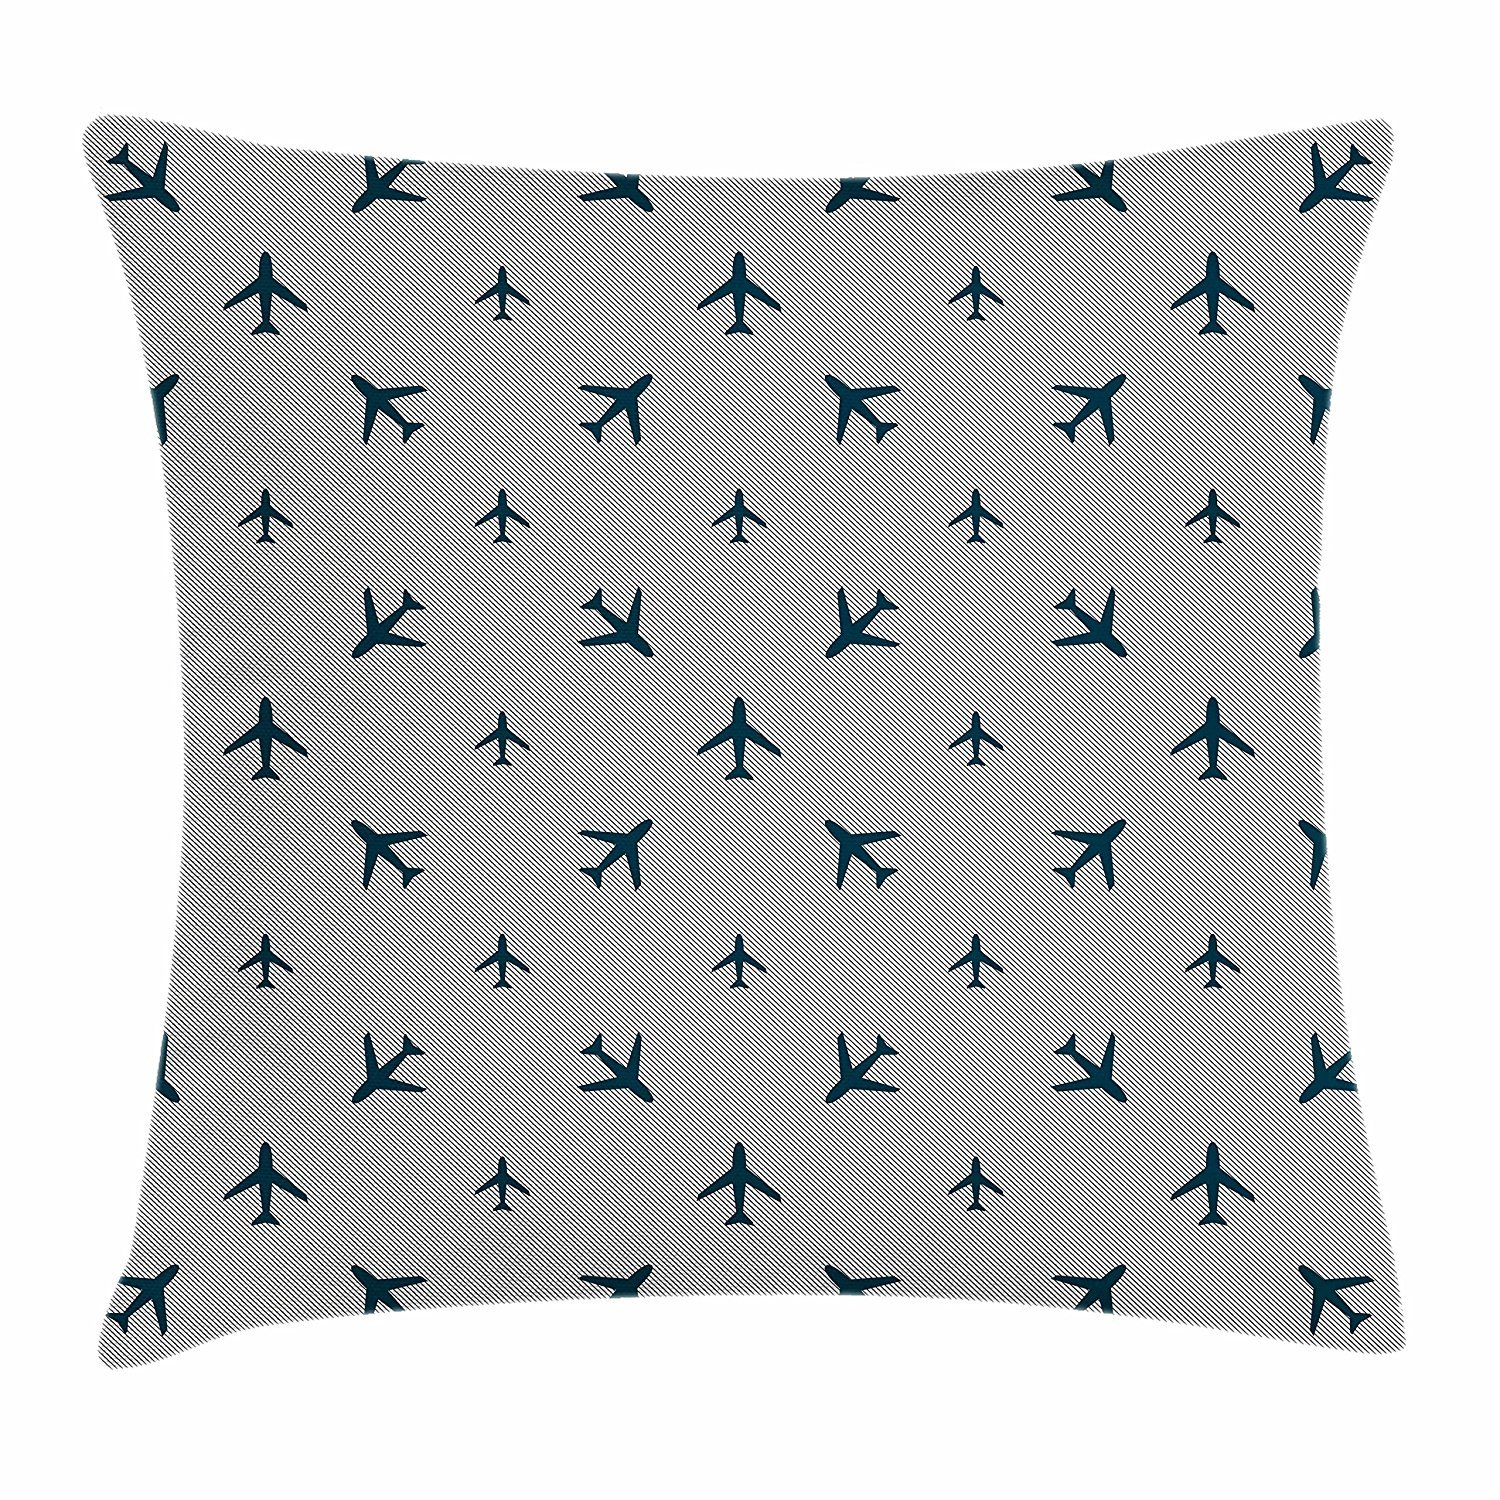 Airplane Throw Pillow Cushion Cover, Diagonal Stripes with Blue Travel Icons Silhouettes Vacation Aviation, Decorative Square Accent Pillow Case, 18 X 18 inches, Petrol Blue Black White Cool pillow